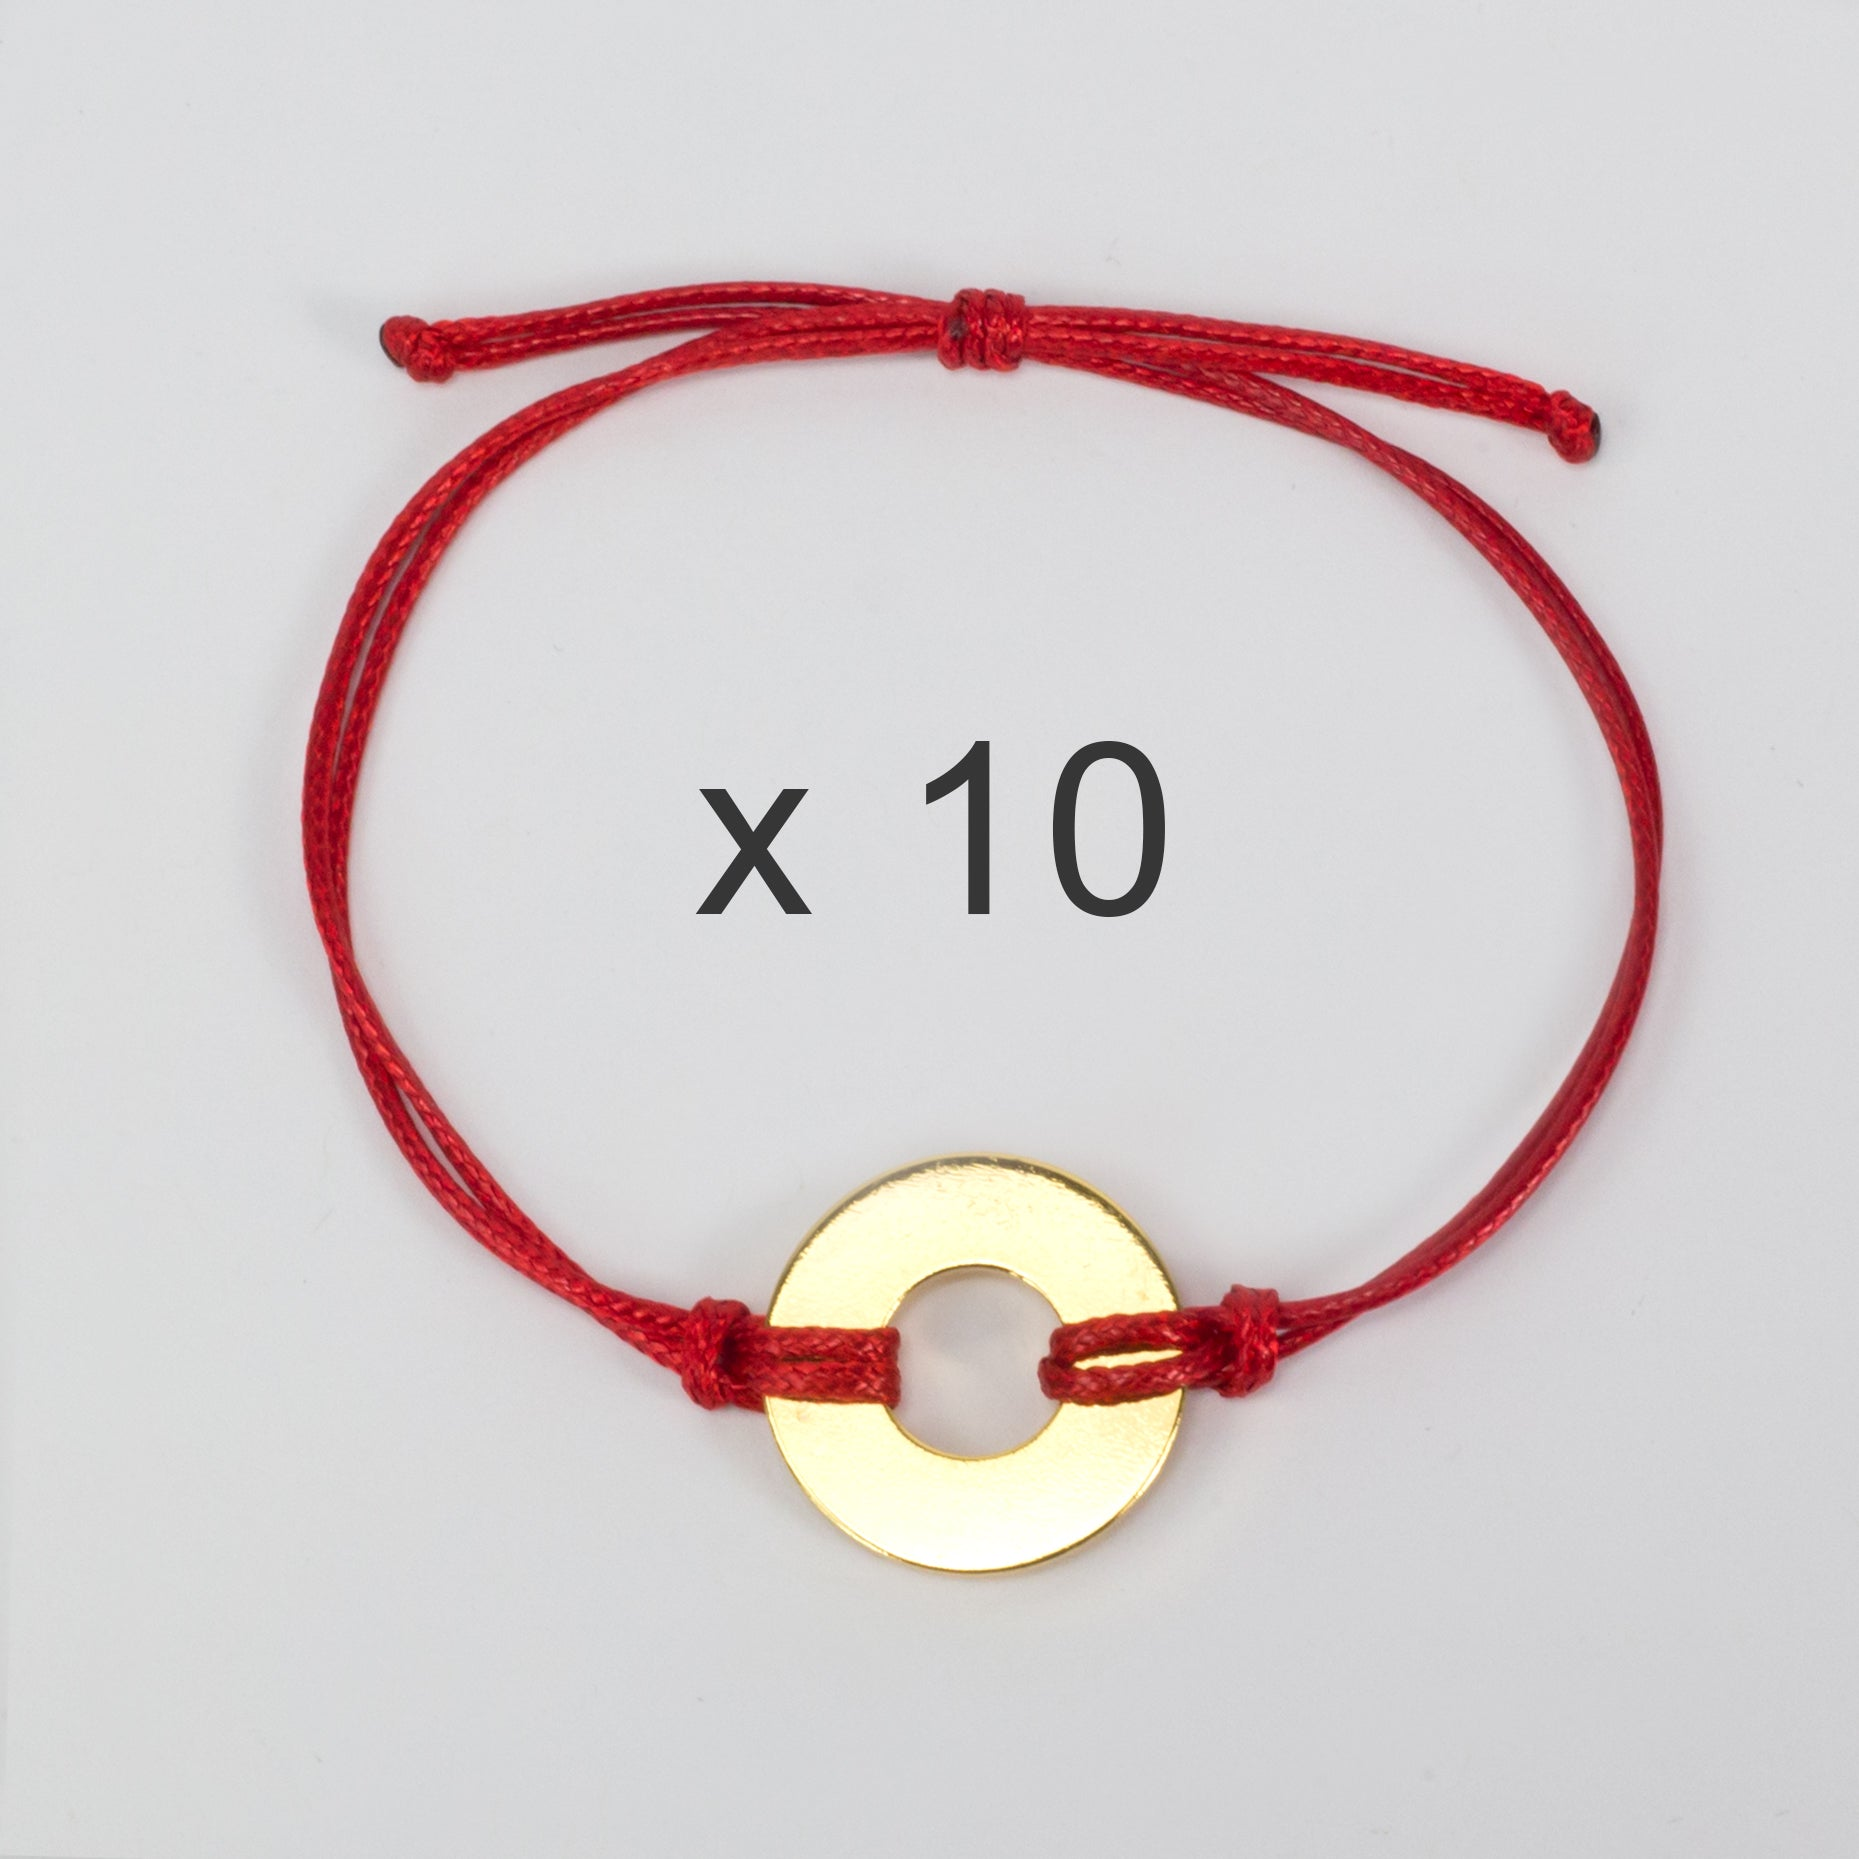 MyIntent Refill Classic Bracelets Red String set of 10 with Brass tokens